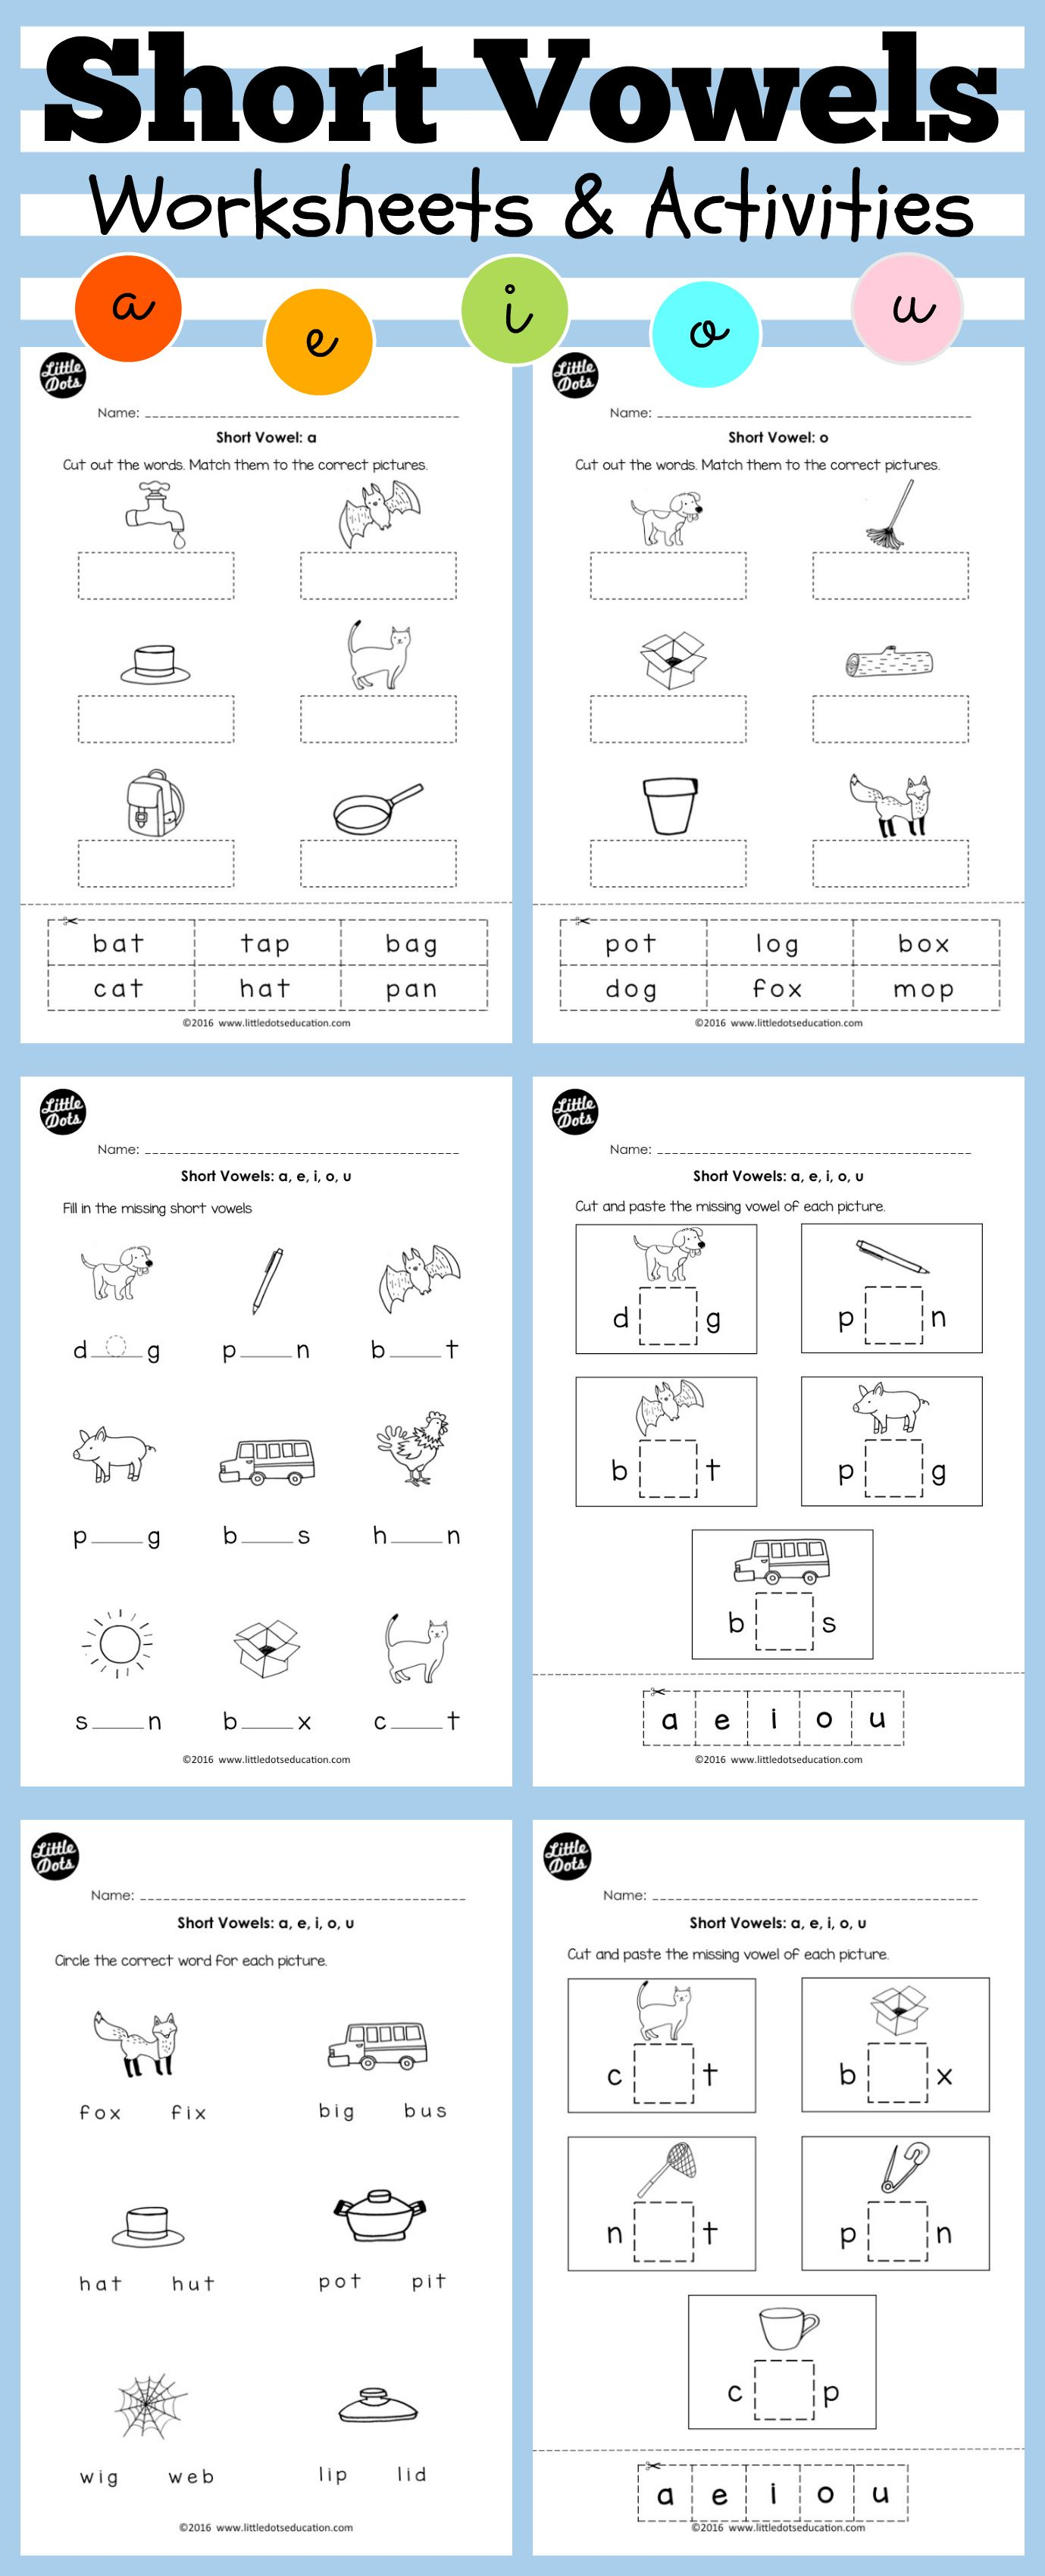 Short Vowels Worksheets And Activities For Preschool Or